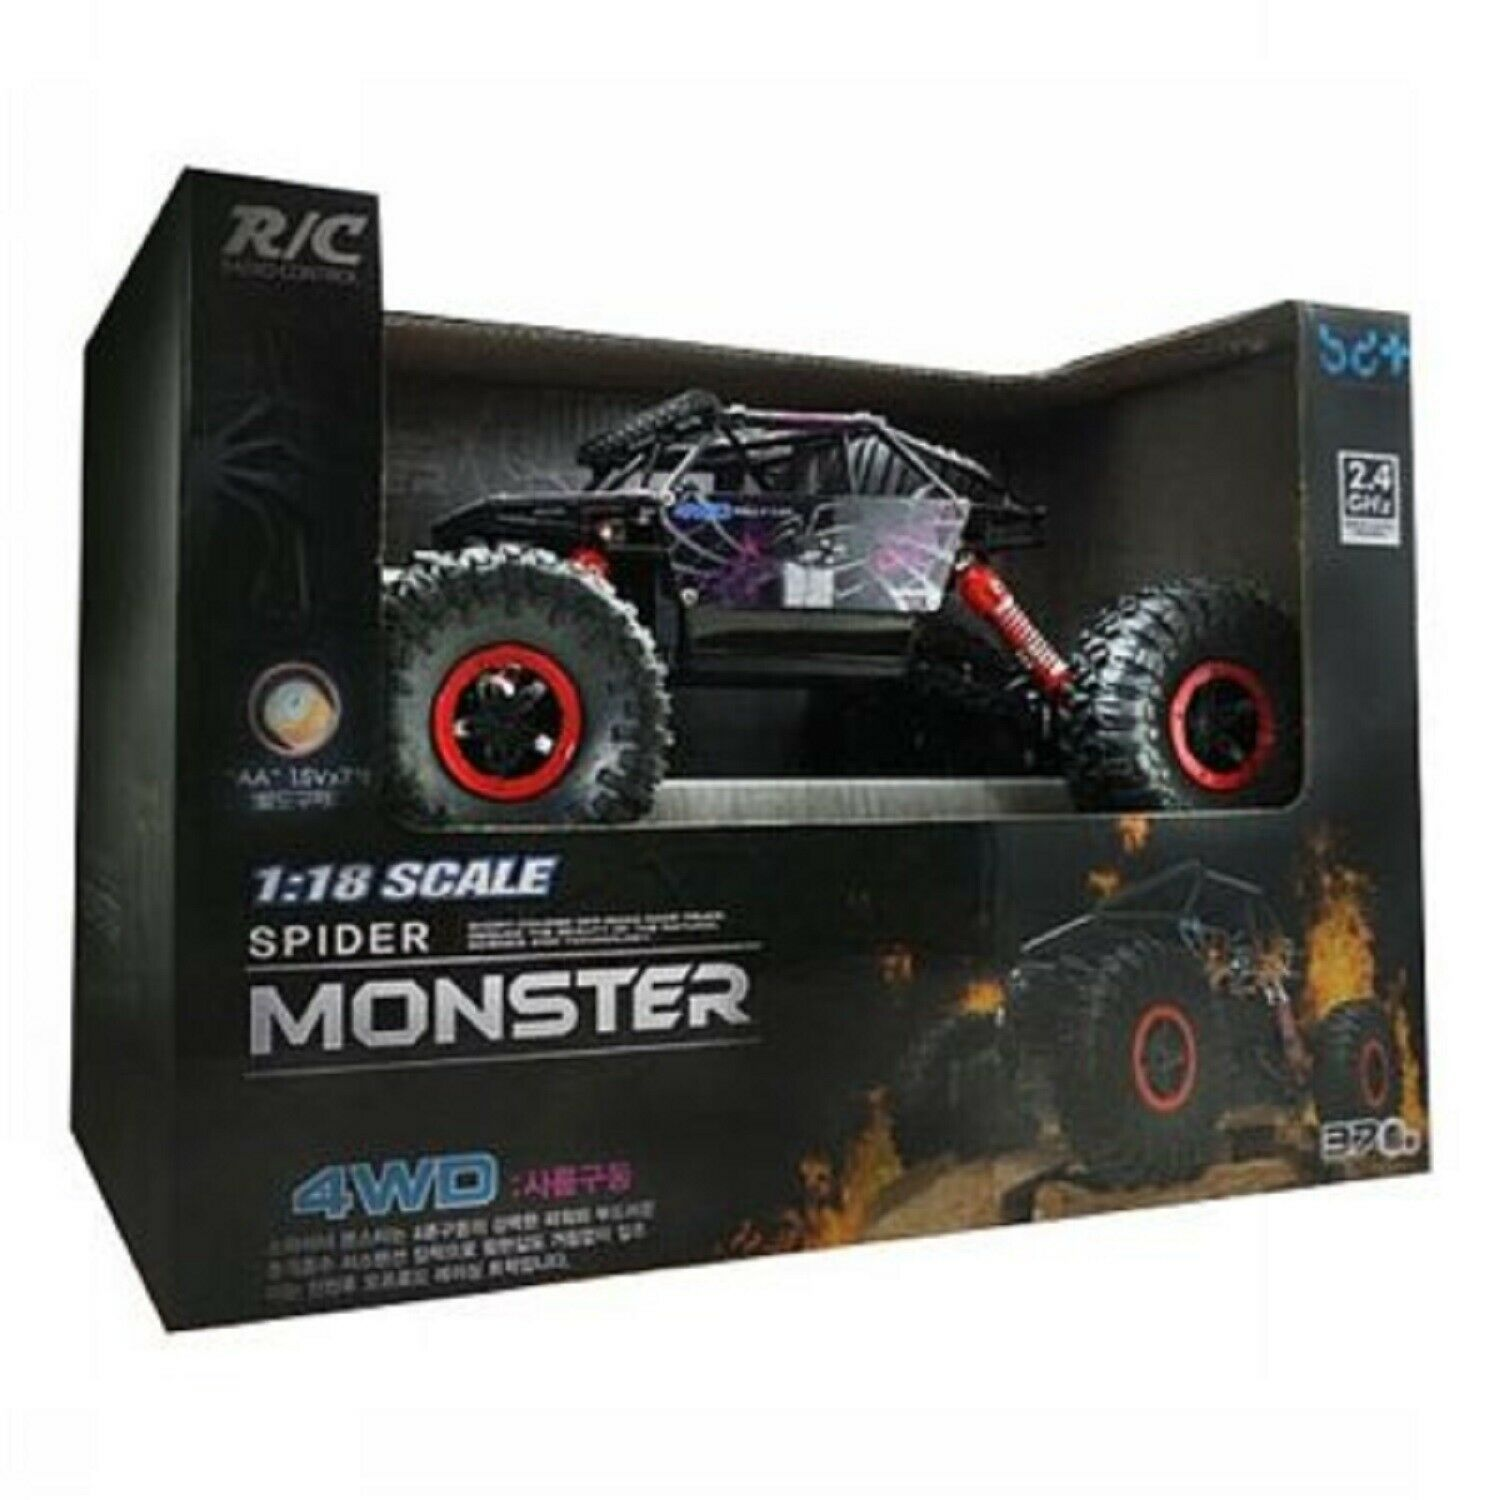 Bandi Toys Spider Monster Wireless RC Radio Controlled Remote Control Car Vehicl